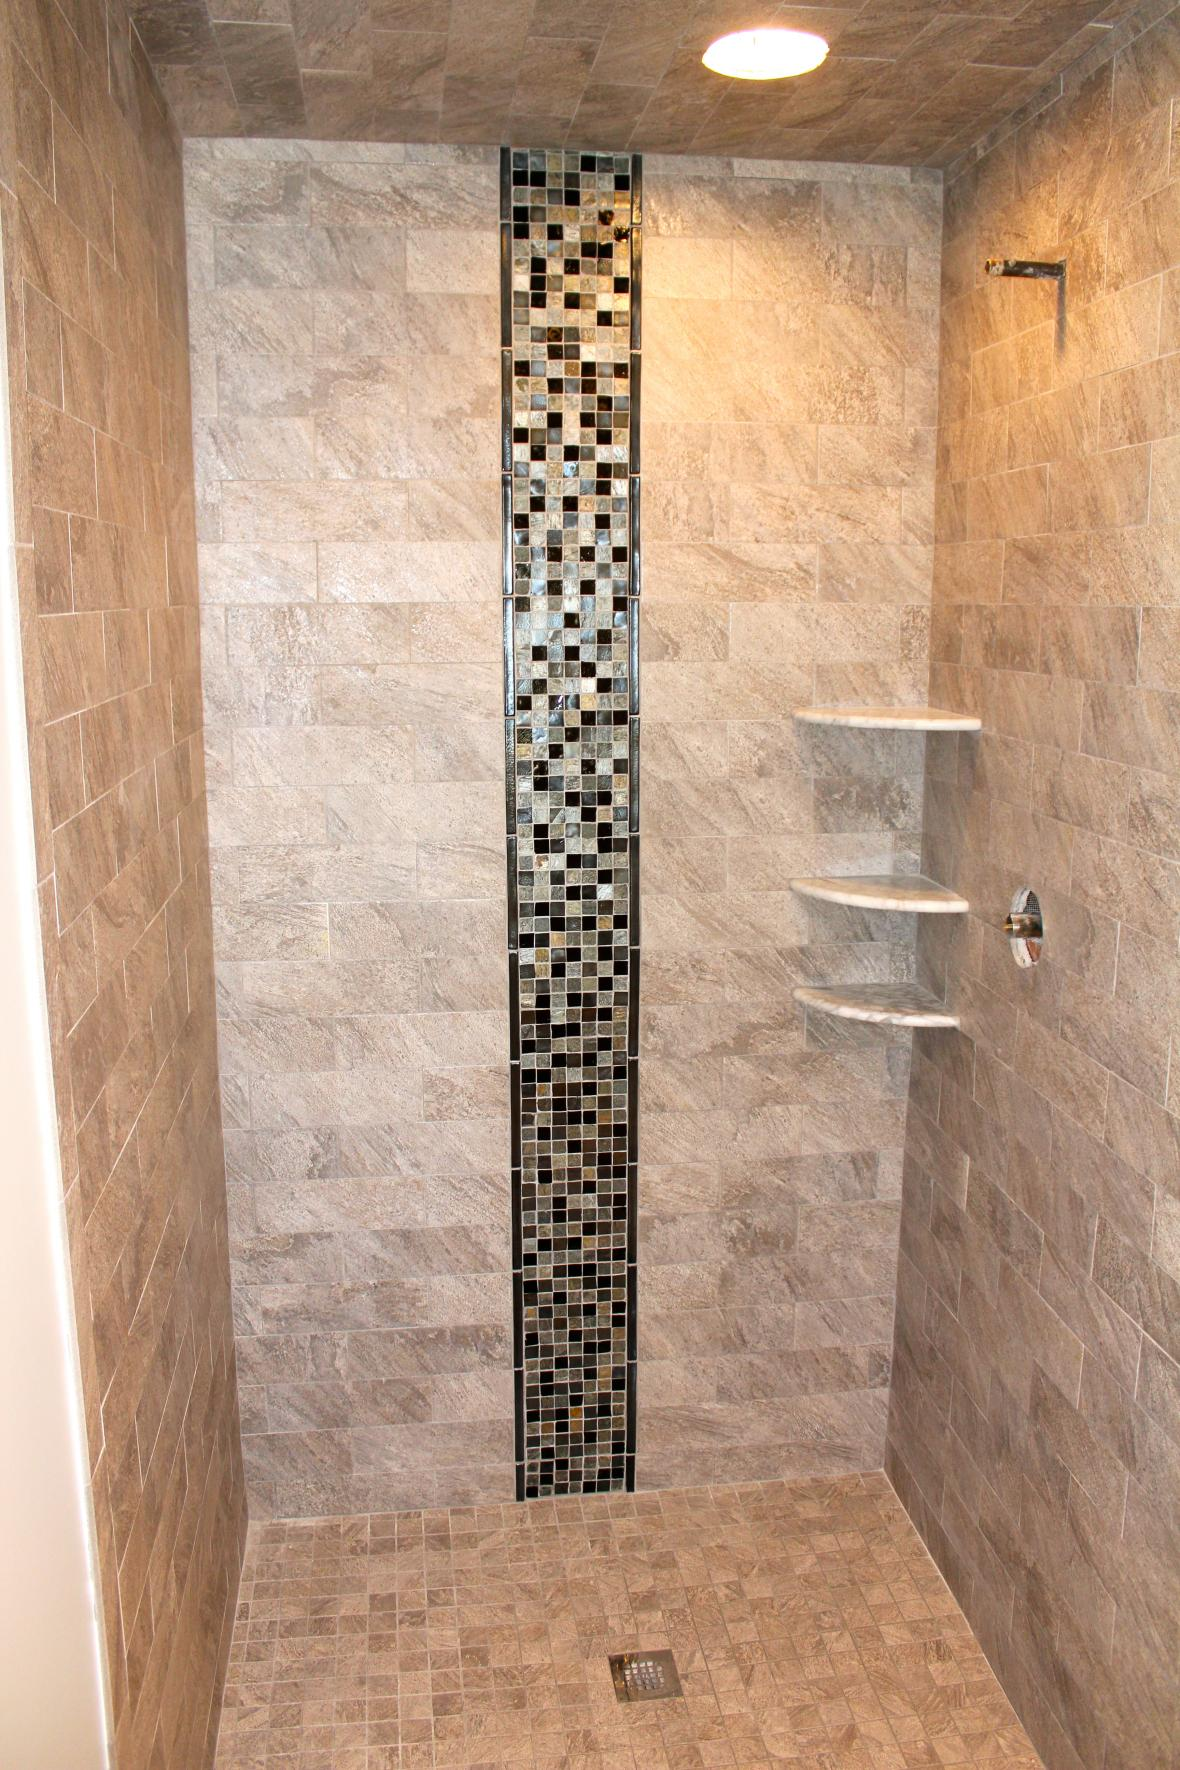 Porcelain Tile For Bathroom Shower Custom Porcelain Tile Shower. Tile shower design ideas